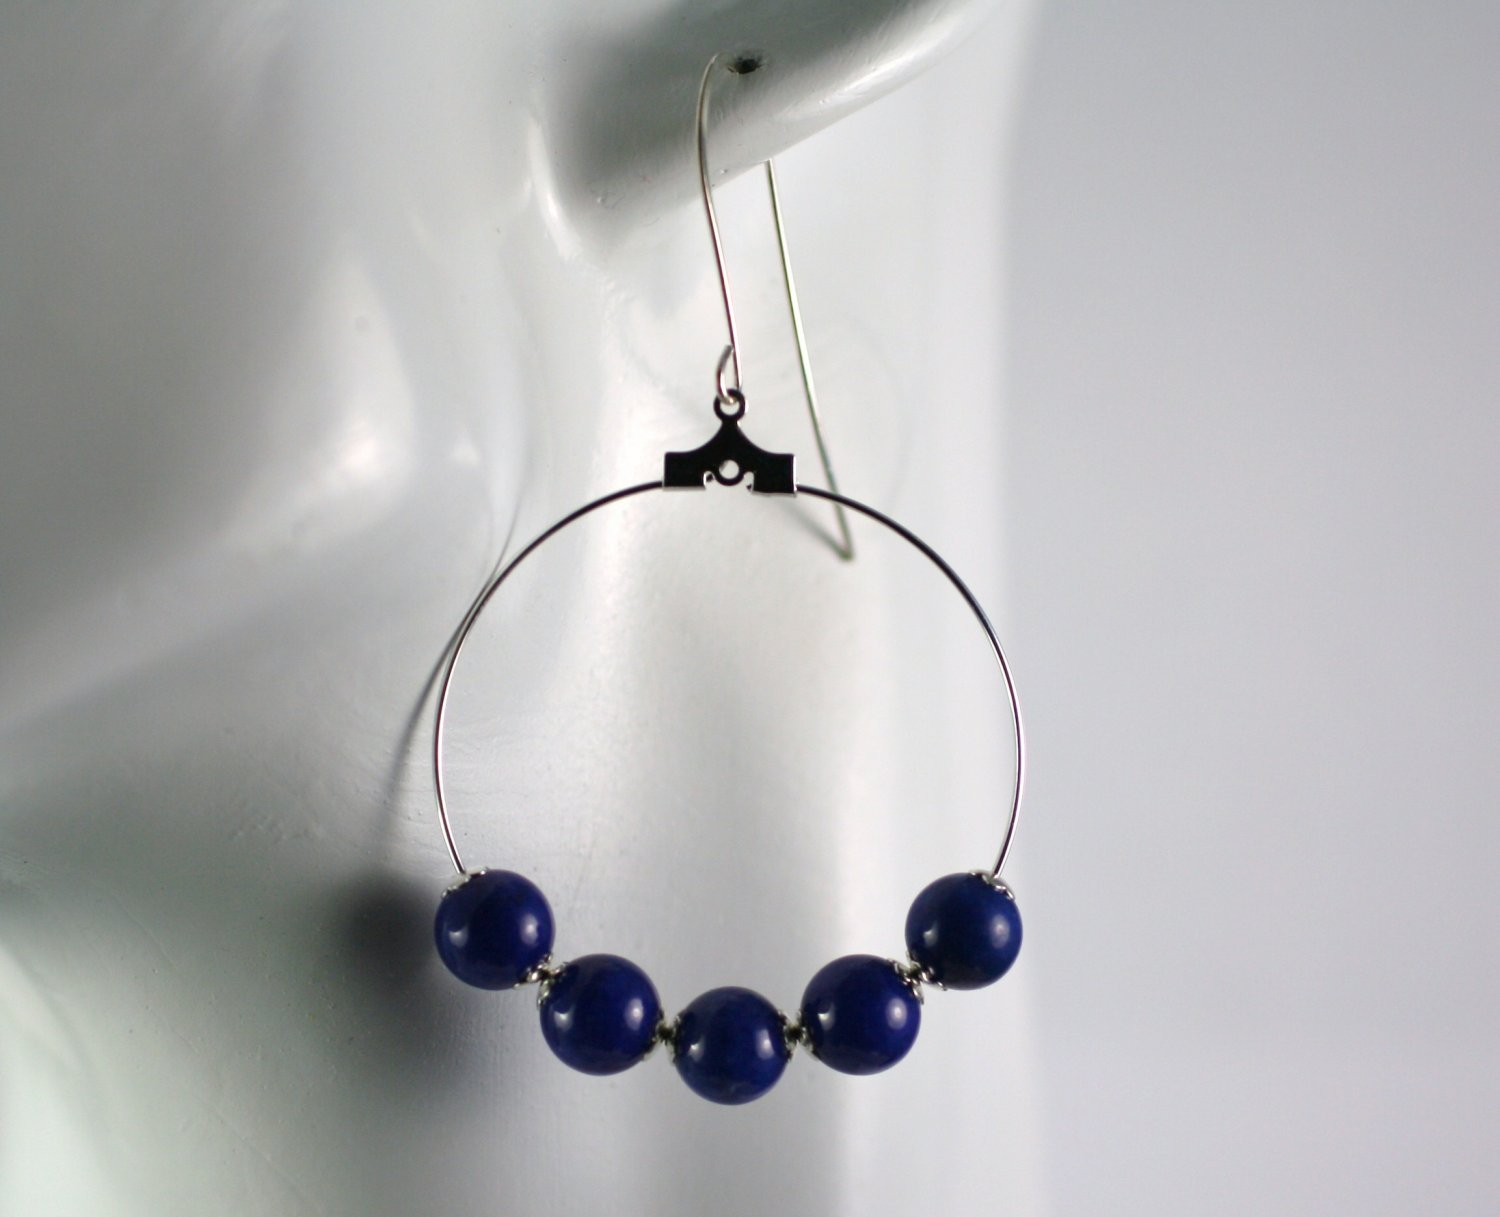 Silver Hoop Earrings with Dark Blue Mountain Jade Beads 1.5 in.  Handcrafted Jewelry